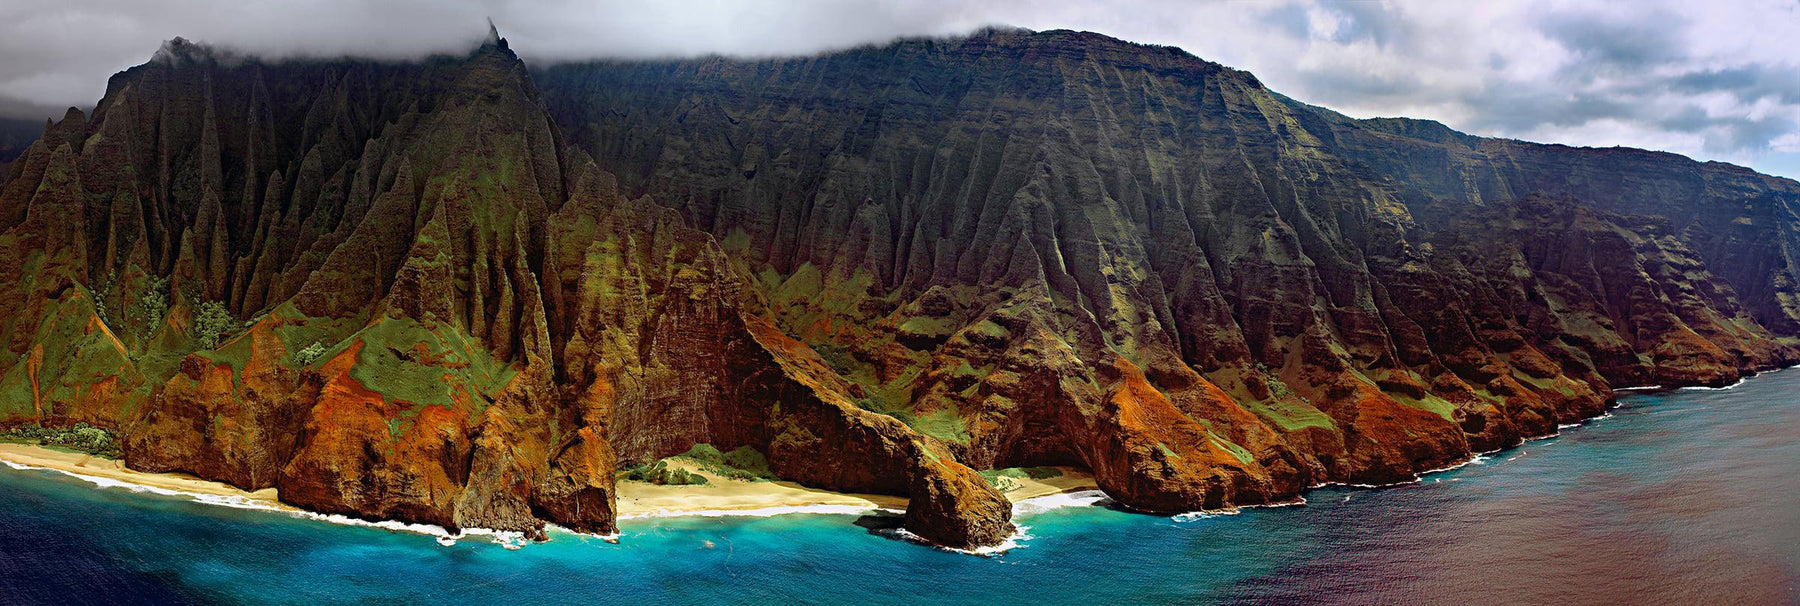 Cliffs of Kauai